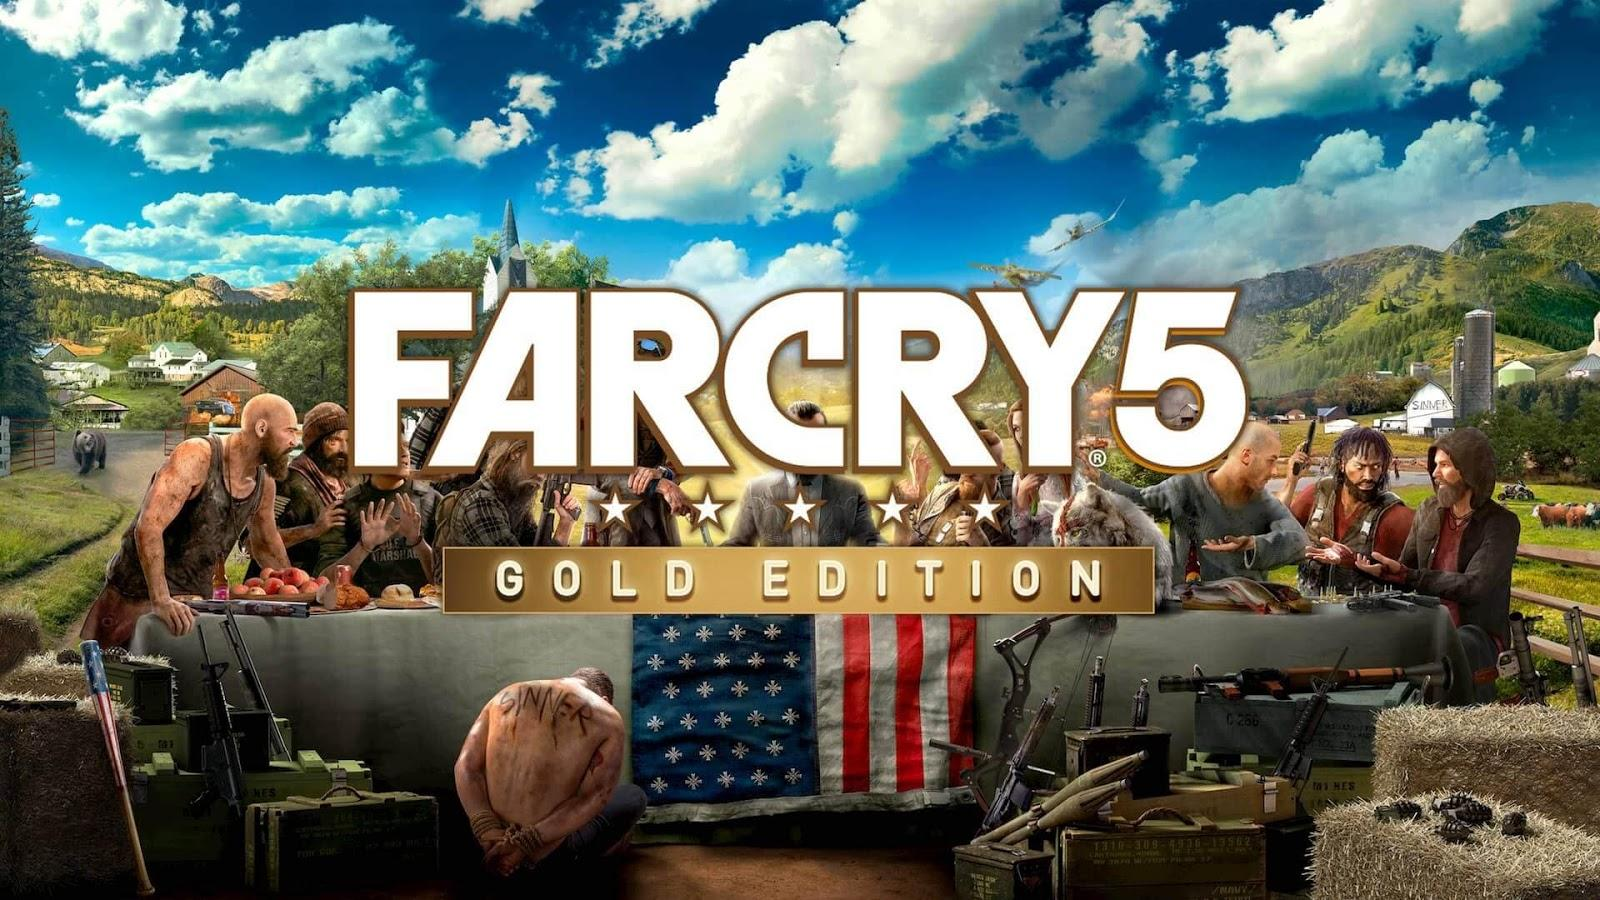 Far Cry 5: Gold Edition v1.011 + 5 DLCs iOS/APK Full Version Free Download